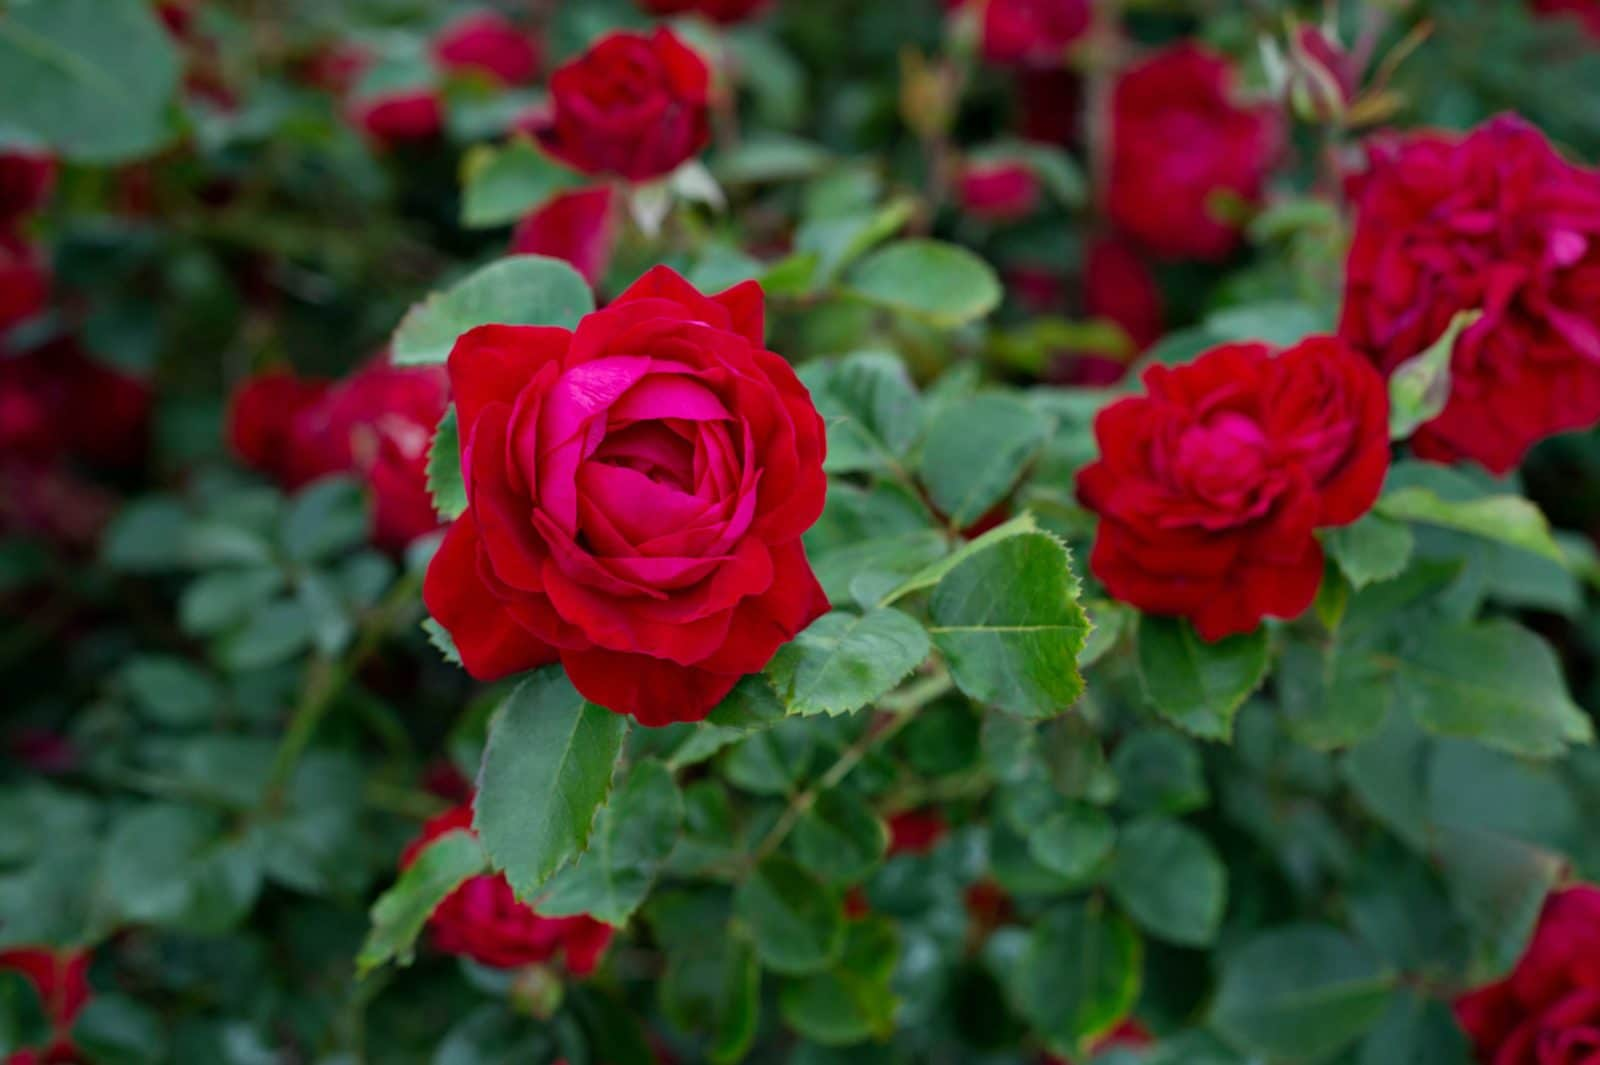 canada blooms features new canadian shield rose